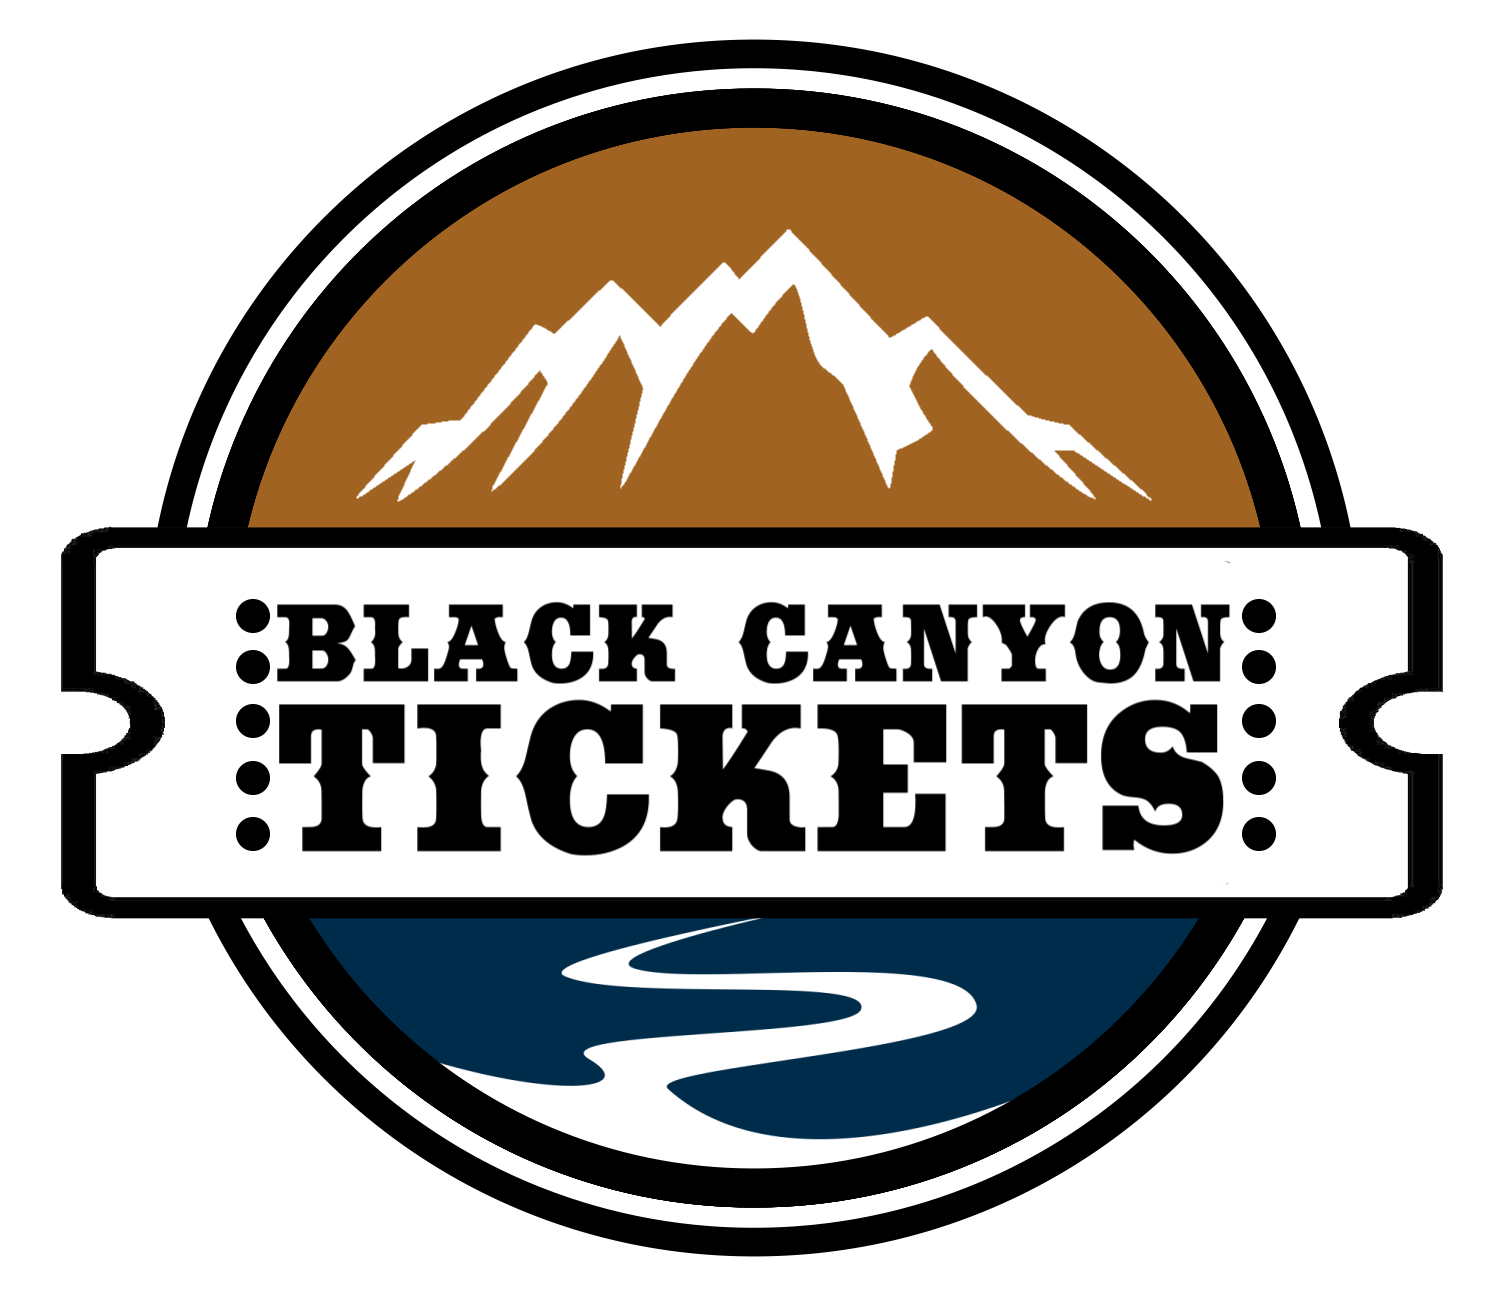 Shop - Black Canyon Tickets